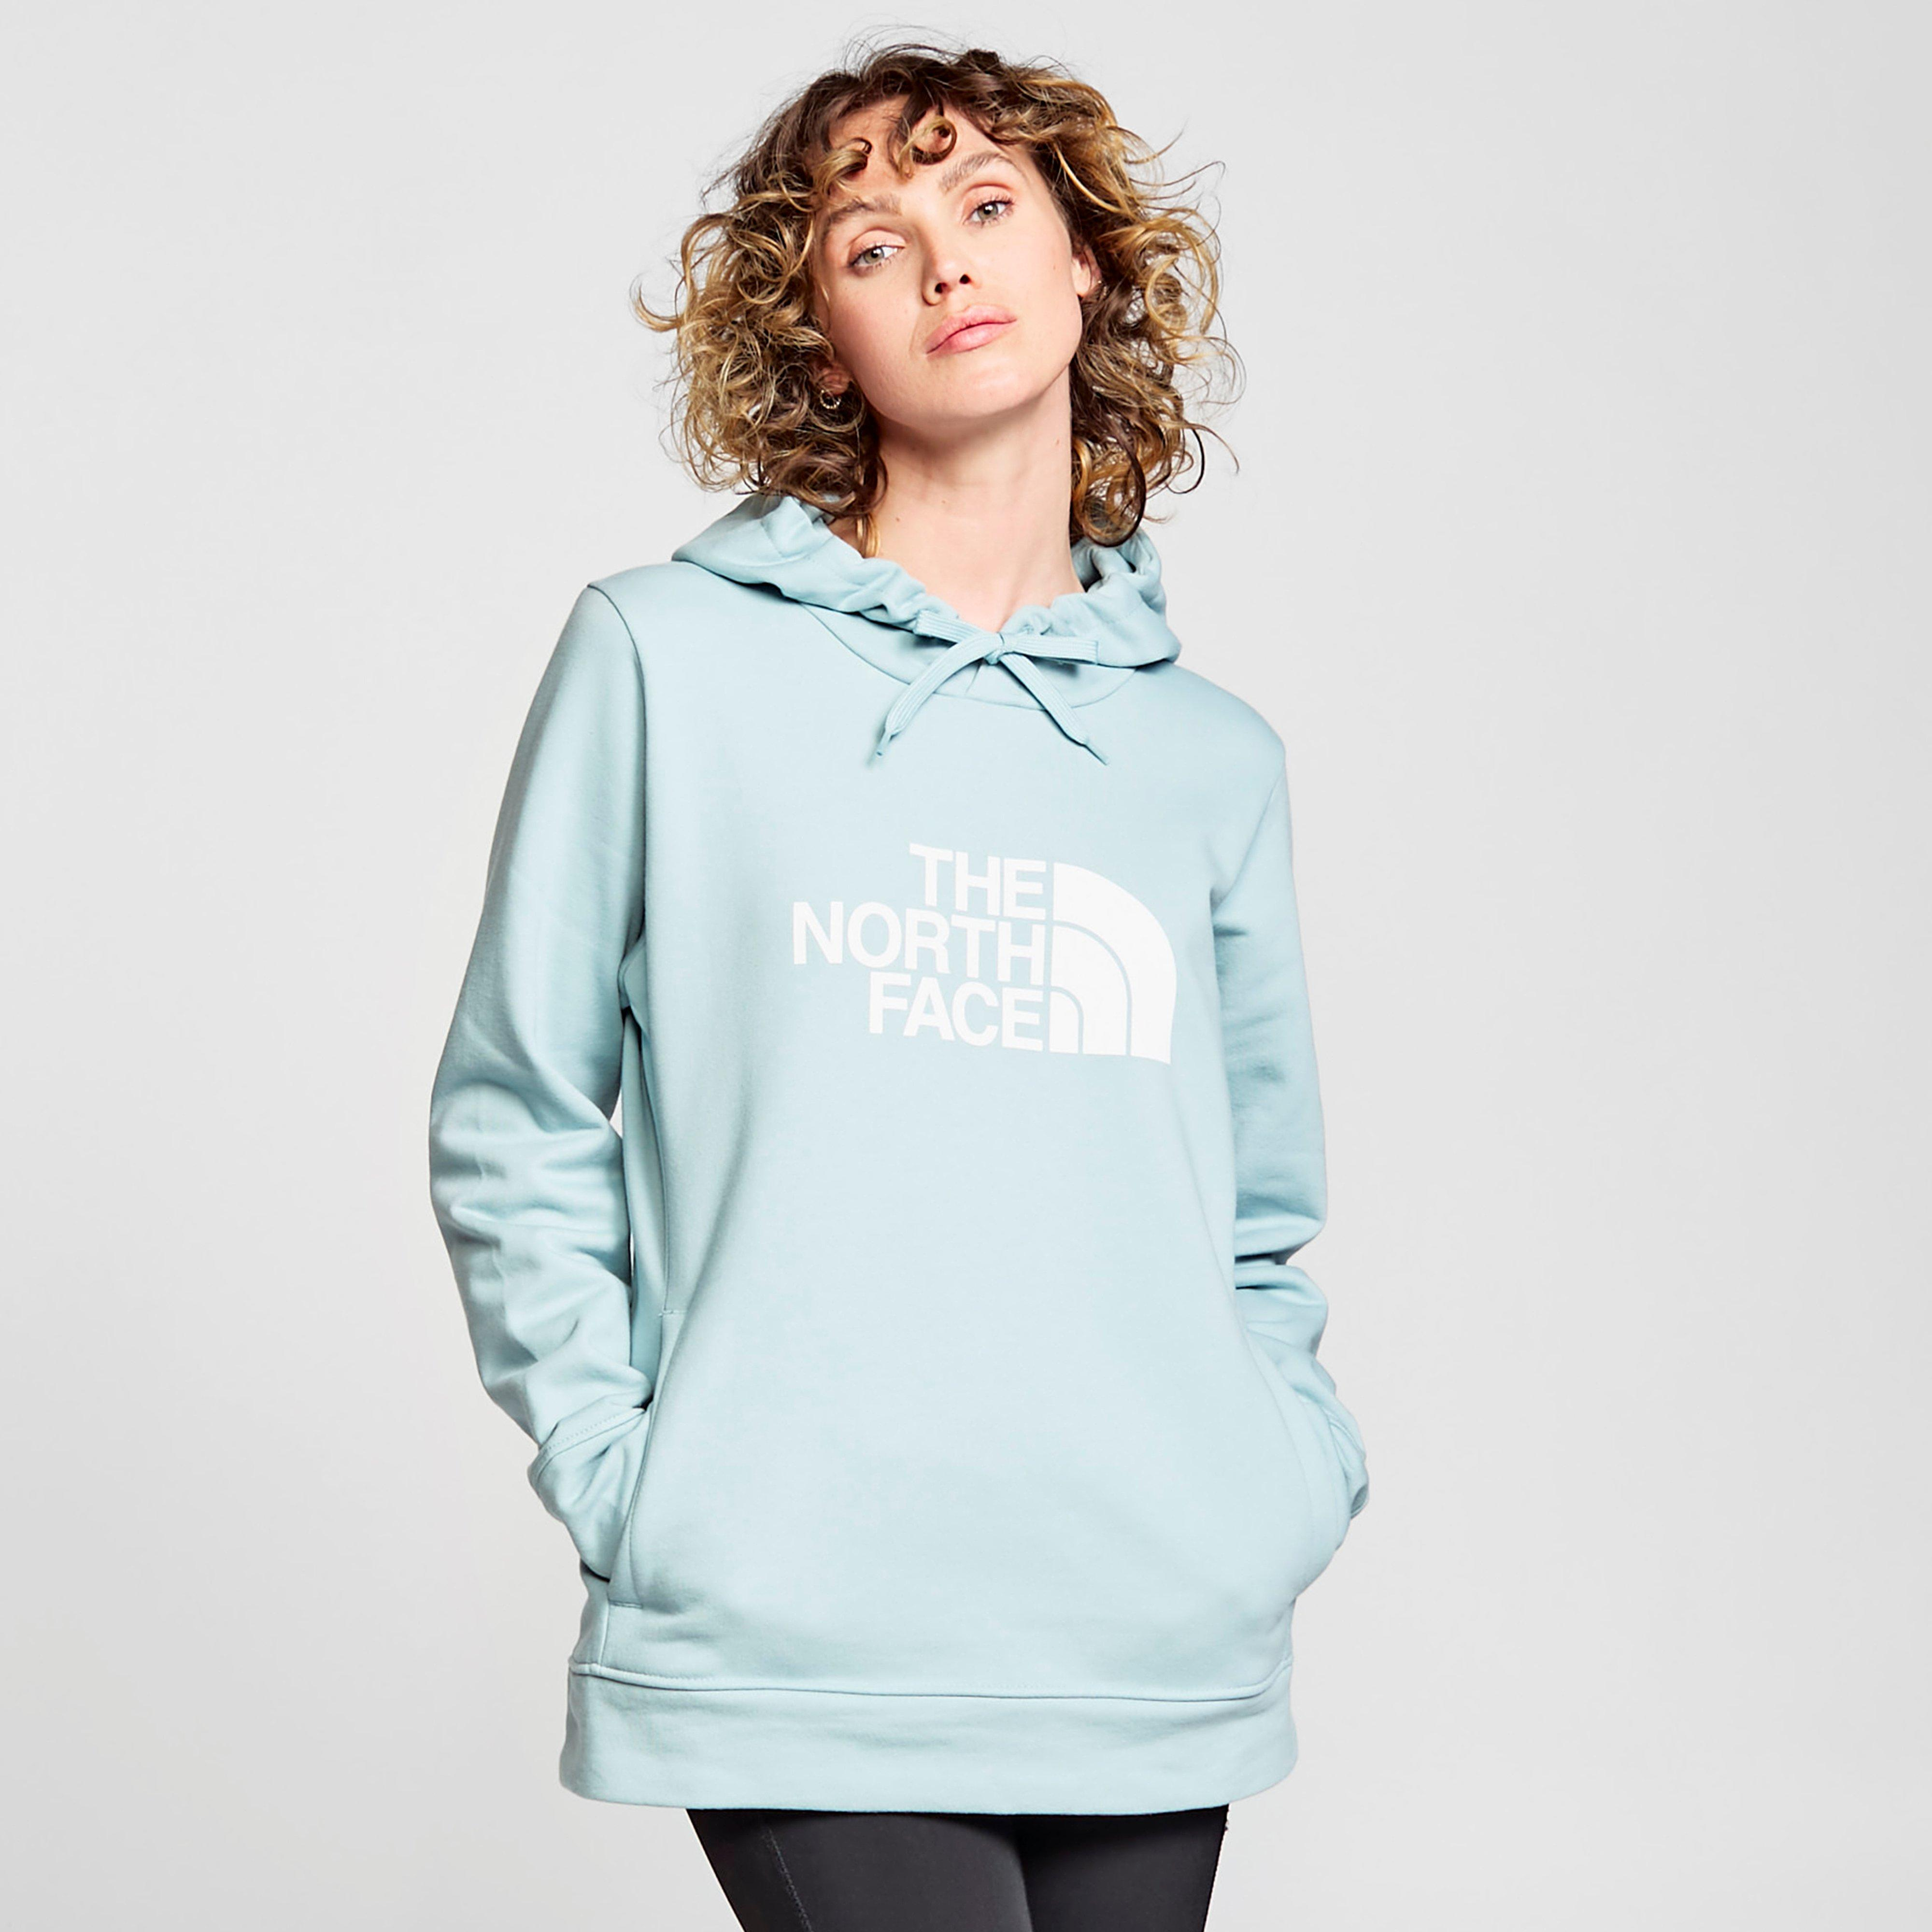 The North Face Women's Half Dome Pullover Hoodie - Blue, Blue